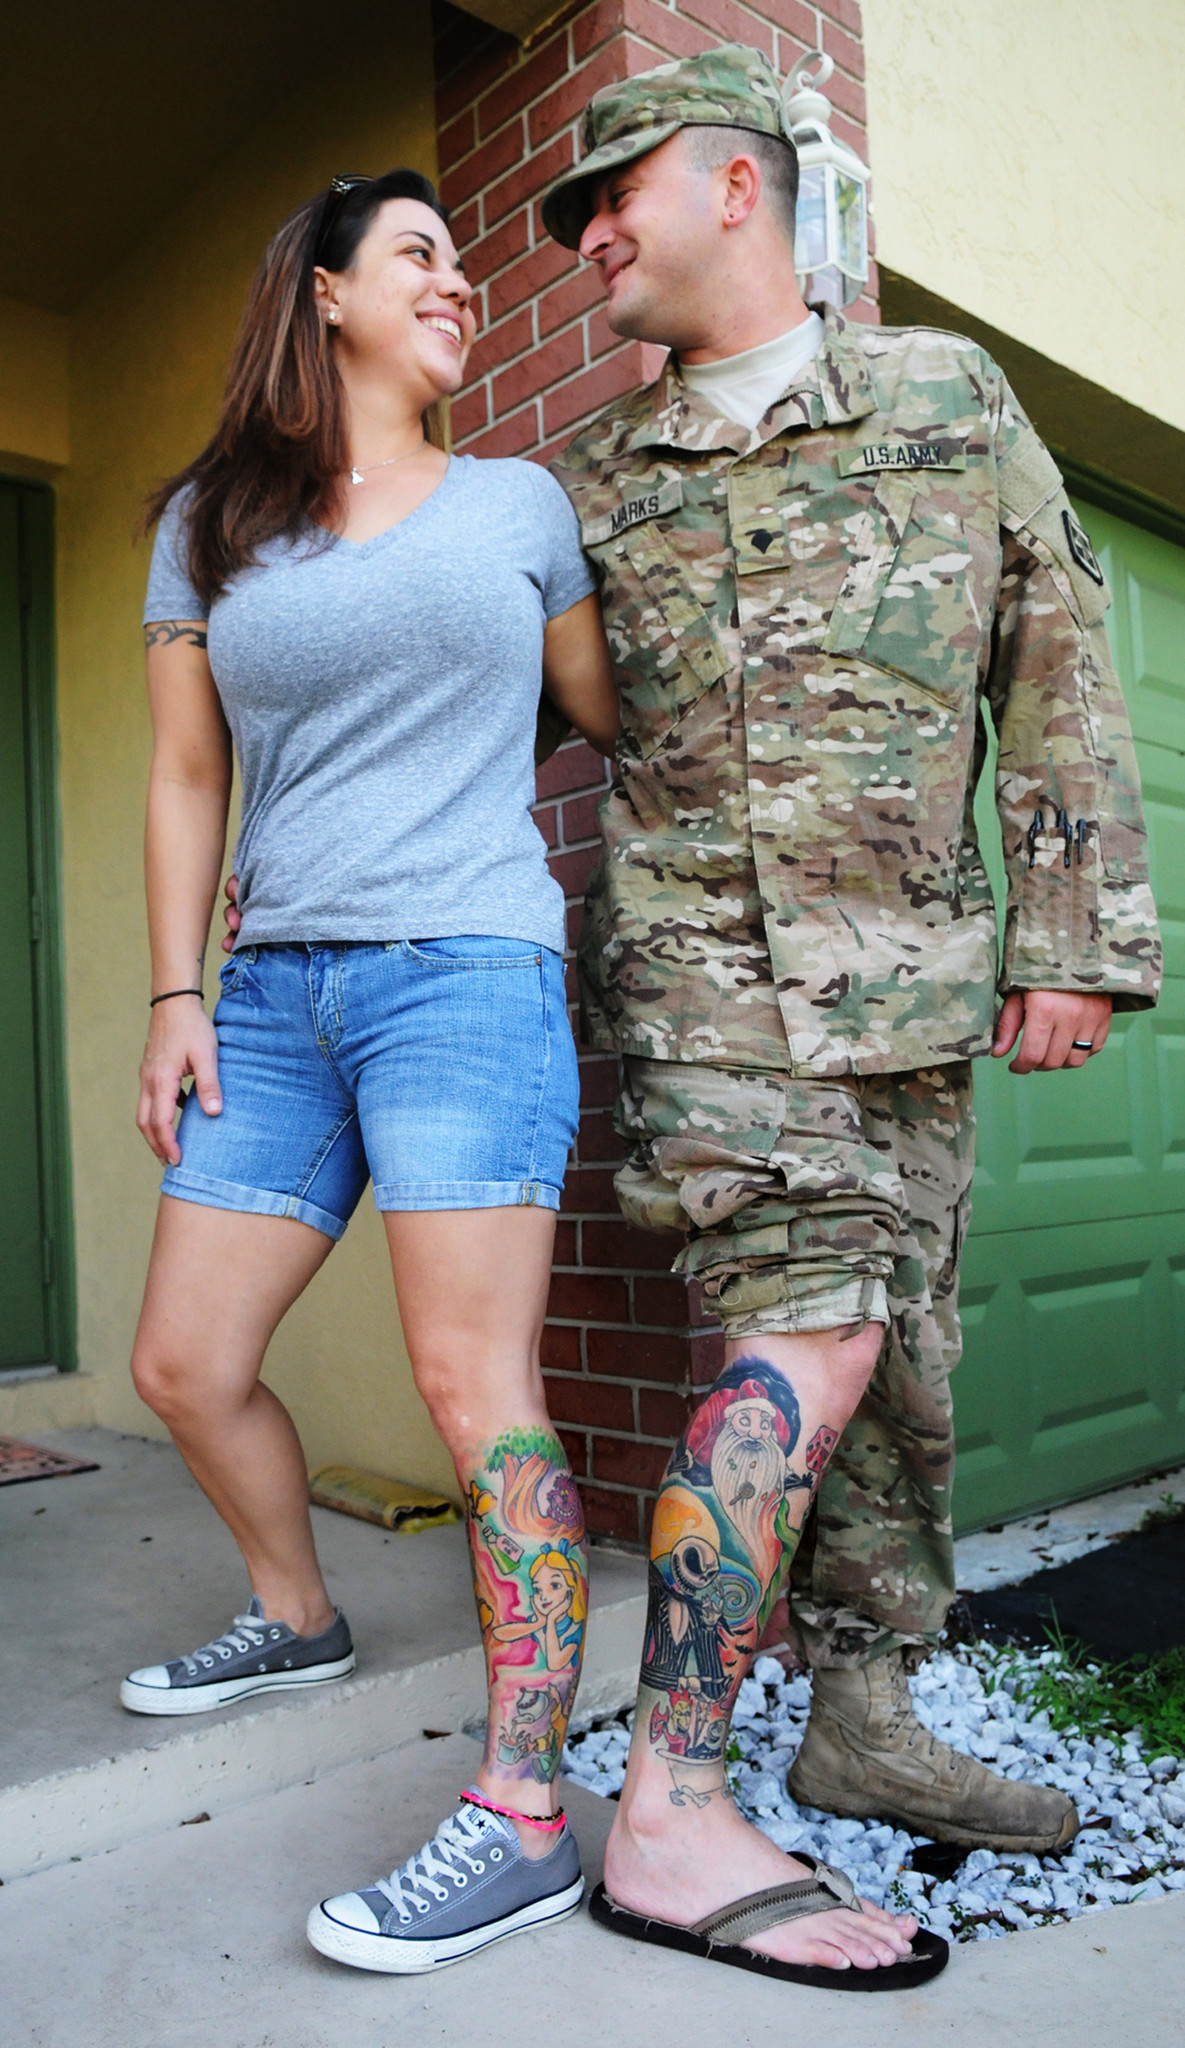 Tattoos Mark Coral Springs Couples Journey Sun Sentinel